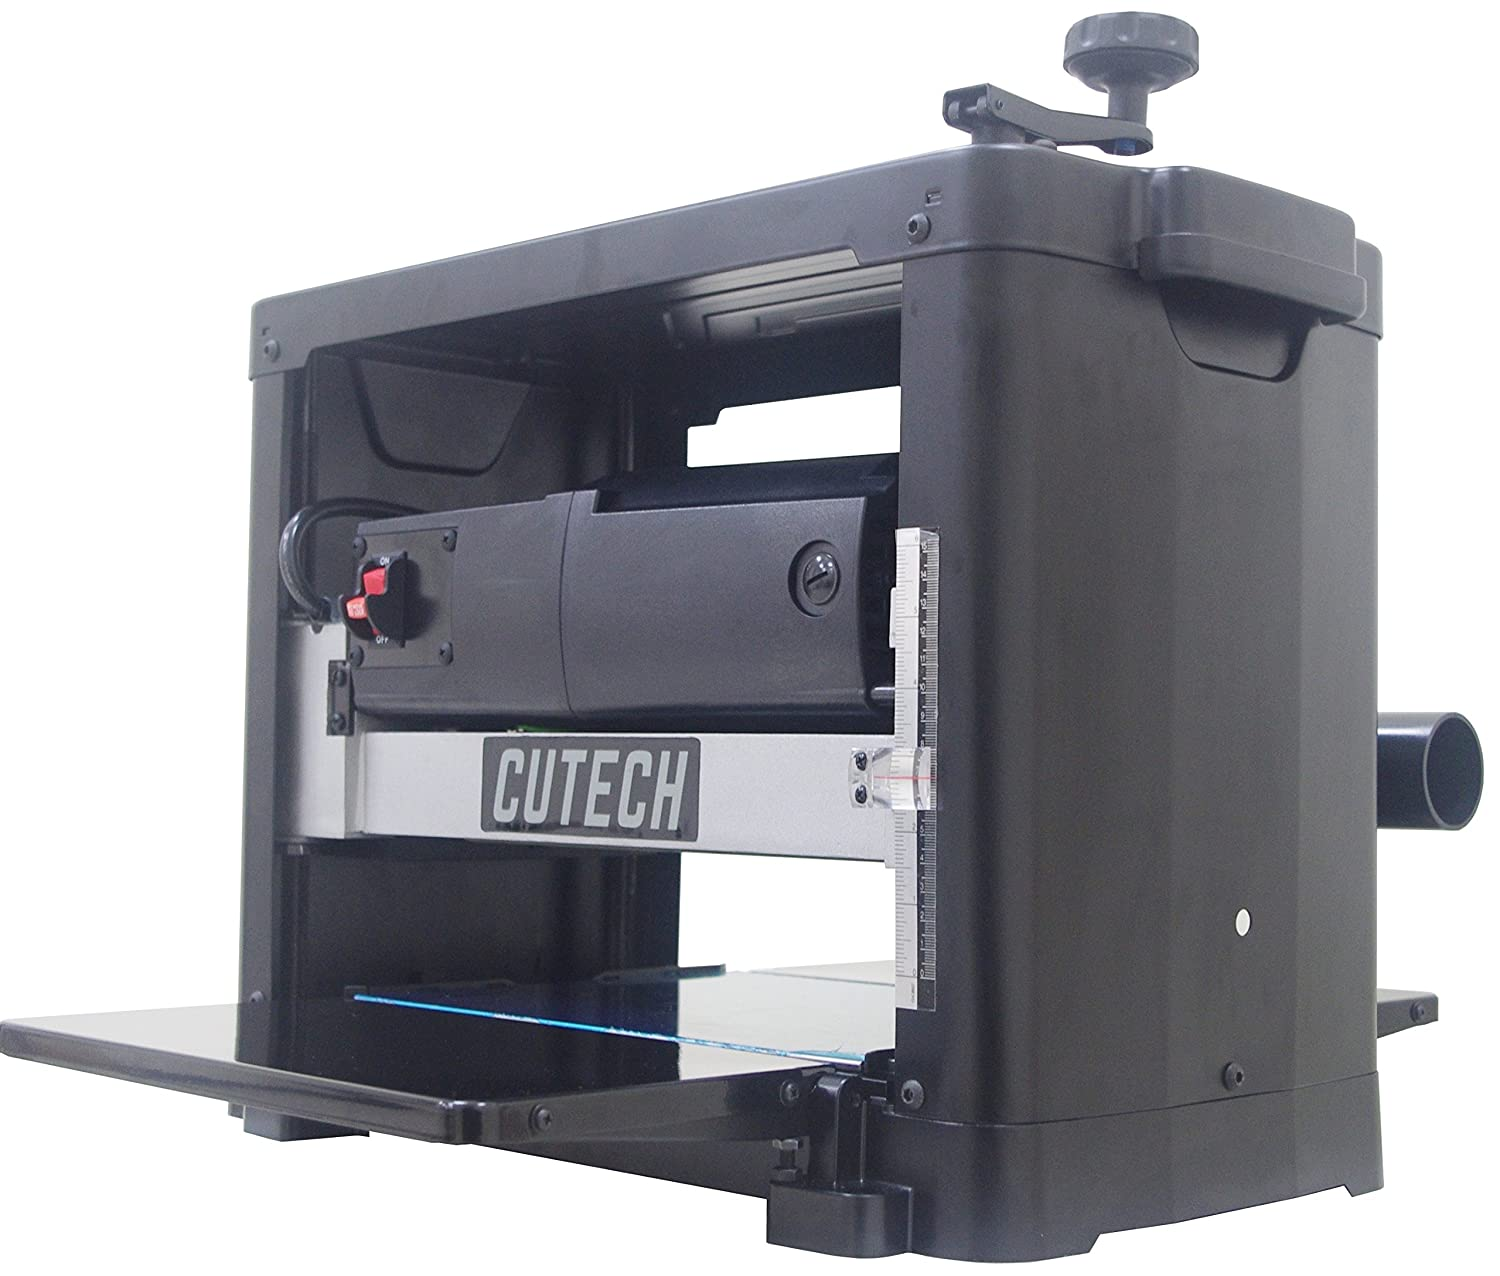 Cutech 40700H-CT 12 1 2 Spiral Cutterhead Planer with High Speed Steel Tips